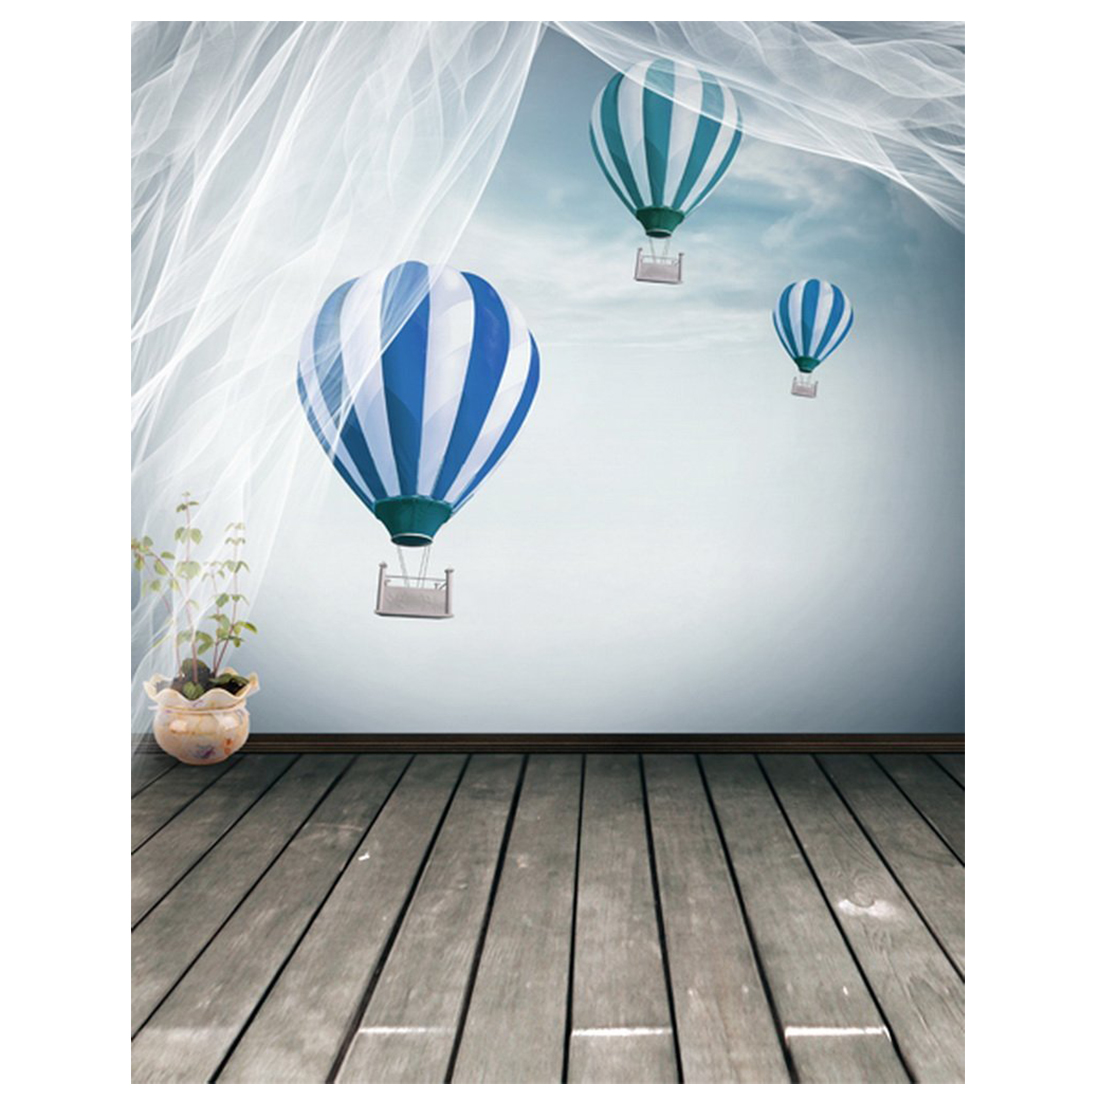 Wooden Floor Blue Hot Air Balloon Photography Backdrops Photo Props Studio Background 5x7ft photo background blue sky white clound photography backdrops newborn hot air balloon fly studio photo backdrop